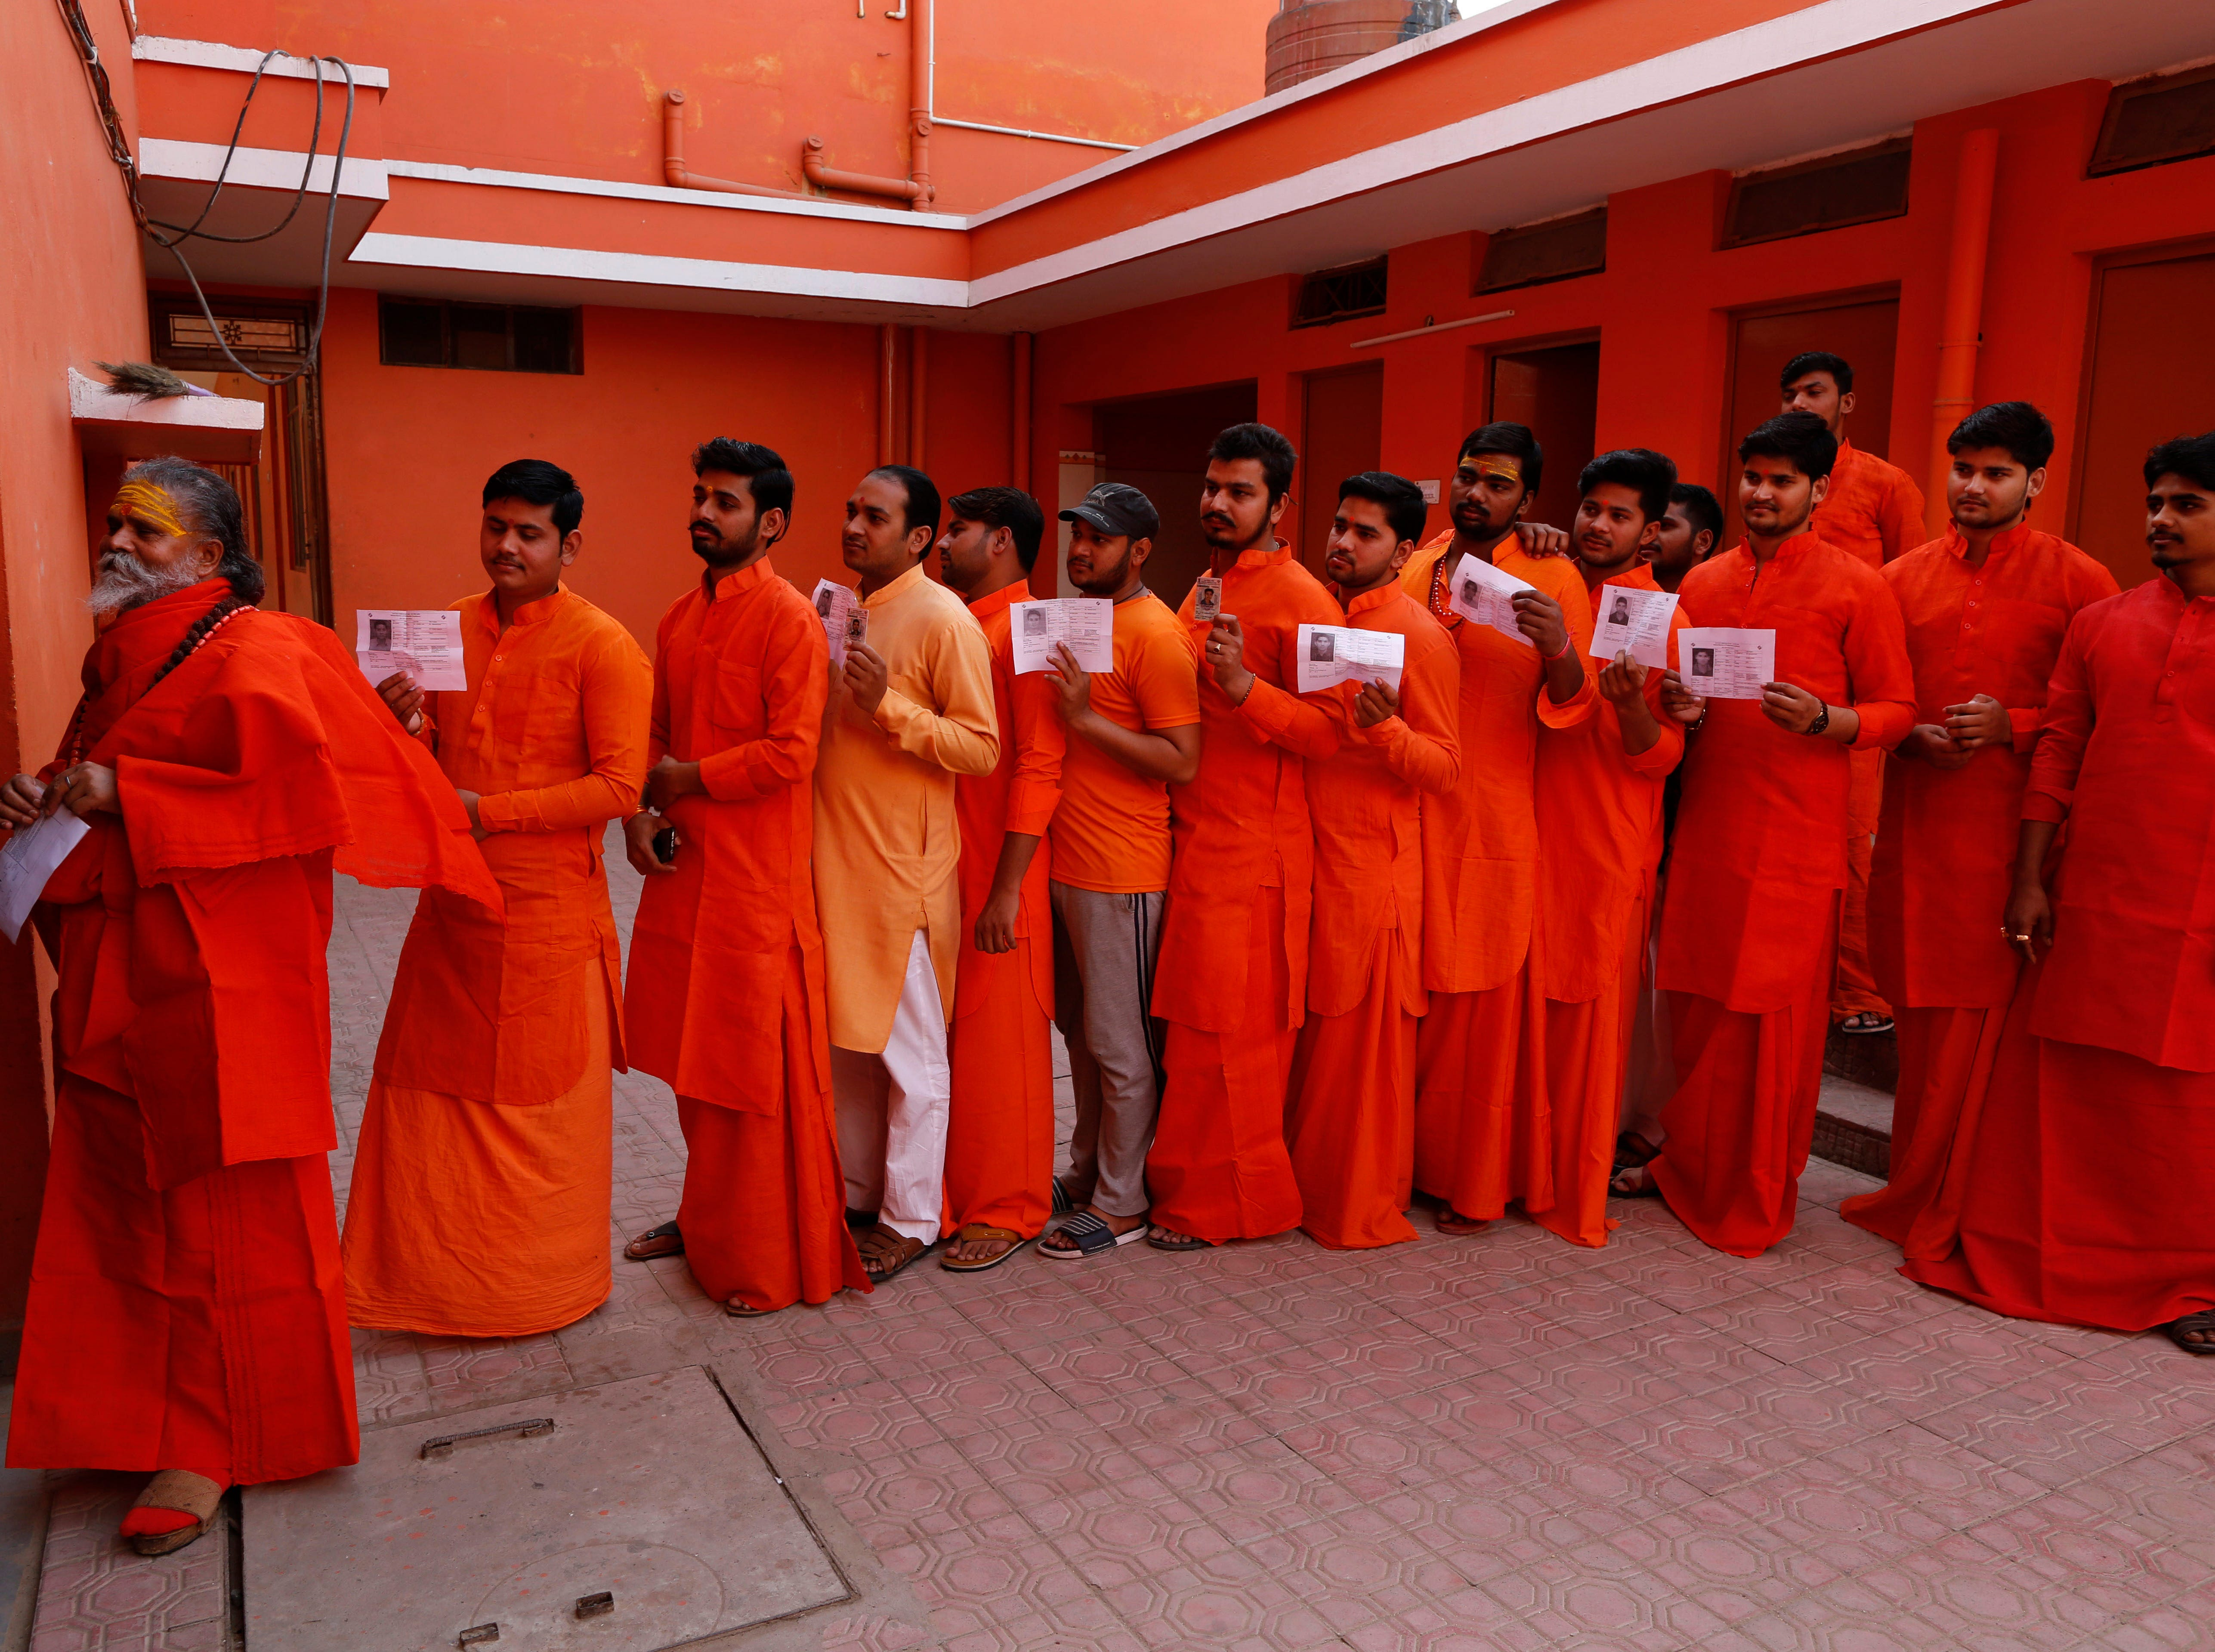 Hindu holy men, stand in a queue to cast their votes at a polling station in Prayagraj, Uttar Pradesh state, India , Sunday, May 12, 2019. Indians are voting in the next-to-last round of 6-week-long national elections, marked by a highly acrimonious campaign with Prime Minister Narendra Modi flaying the opposition Congress party rival Rahul Gandhi's family for the country's ills.